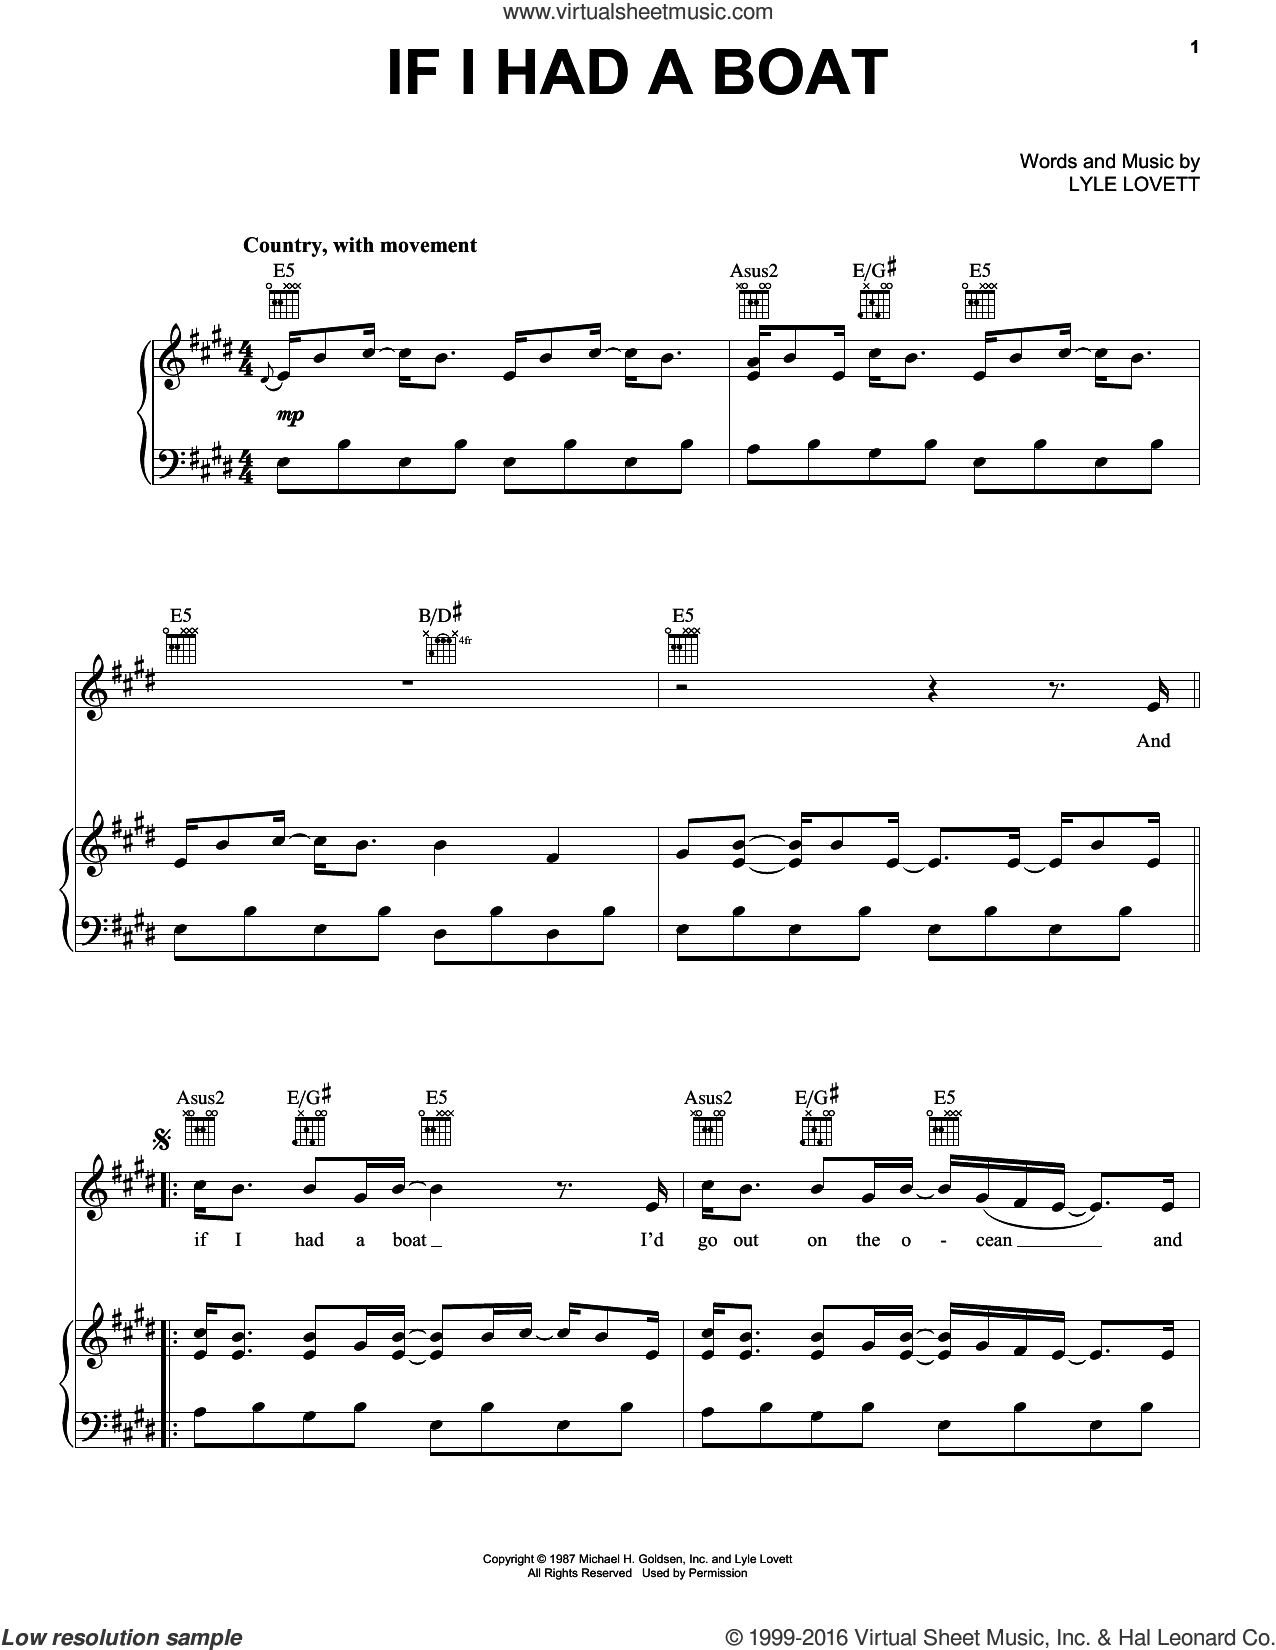 If I Had A Boat sheet music for voice, piano or guitar by Lyle Lovett, intermediate skill level